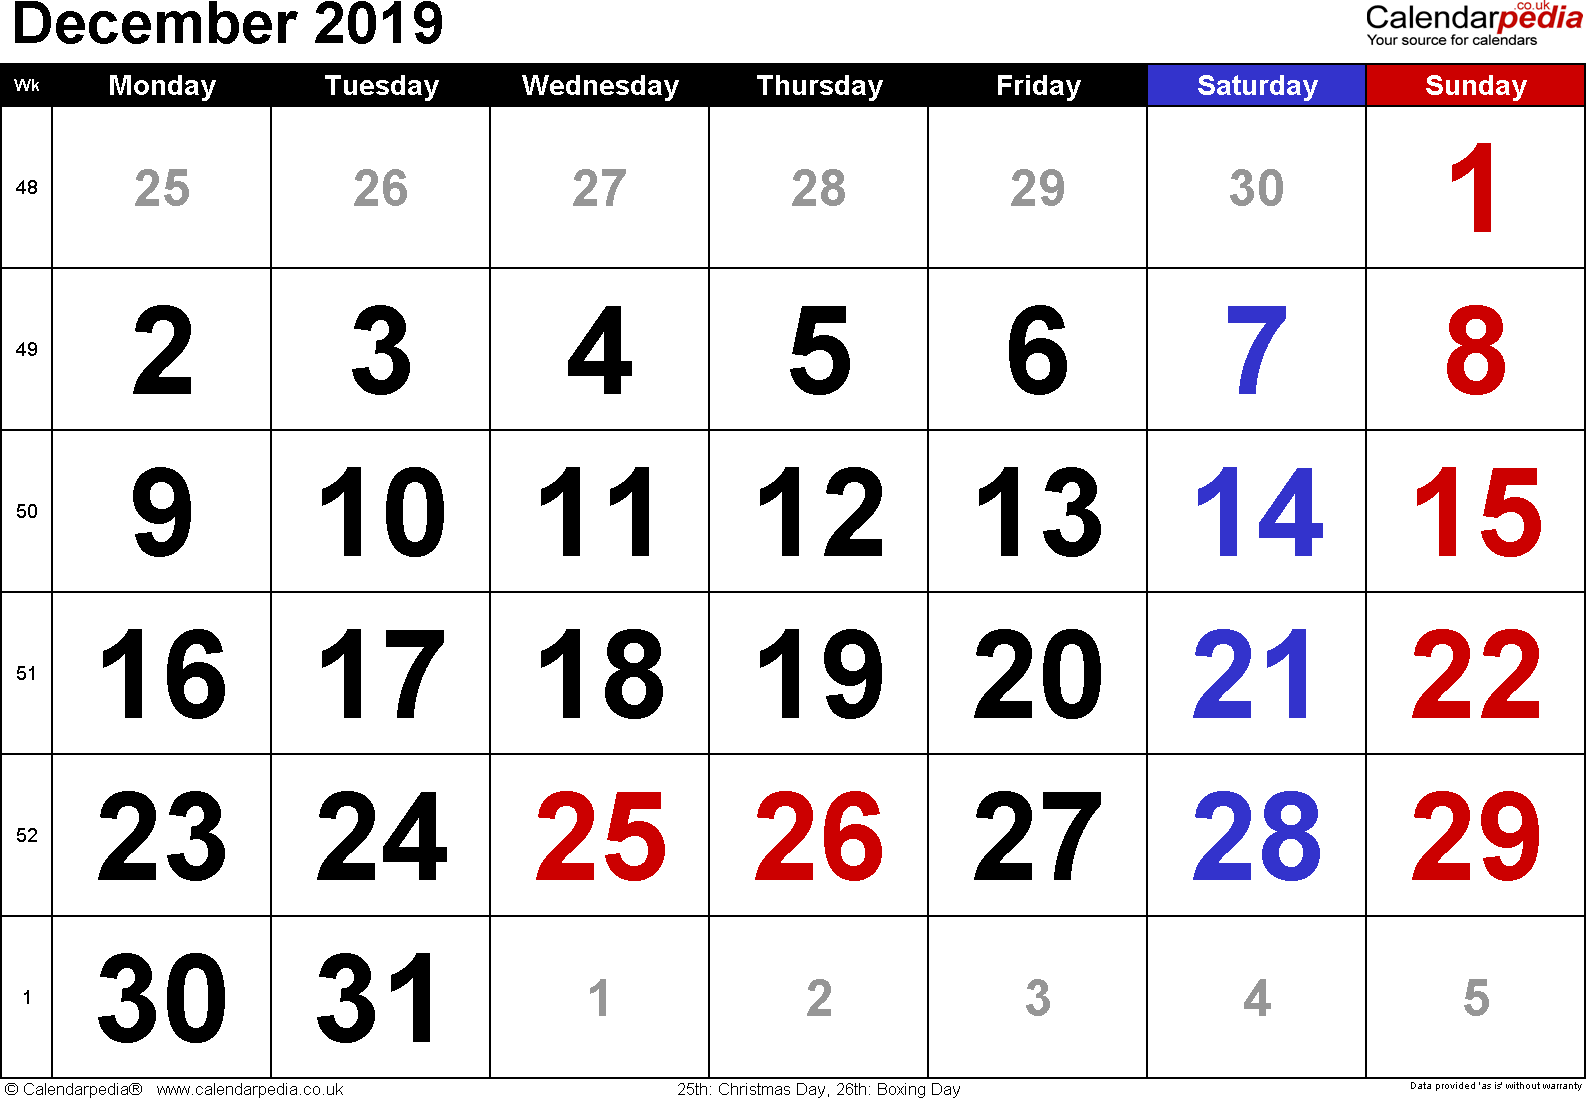 Calendar December 2019, landscape orientation, large numerals, 1 page, with UK bank holidays and week numbers